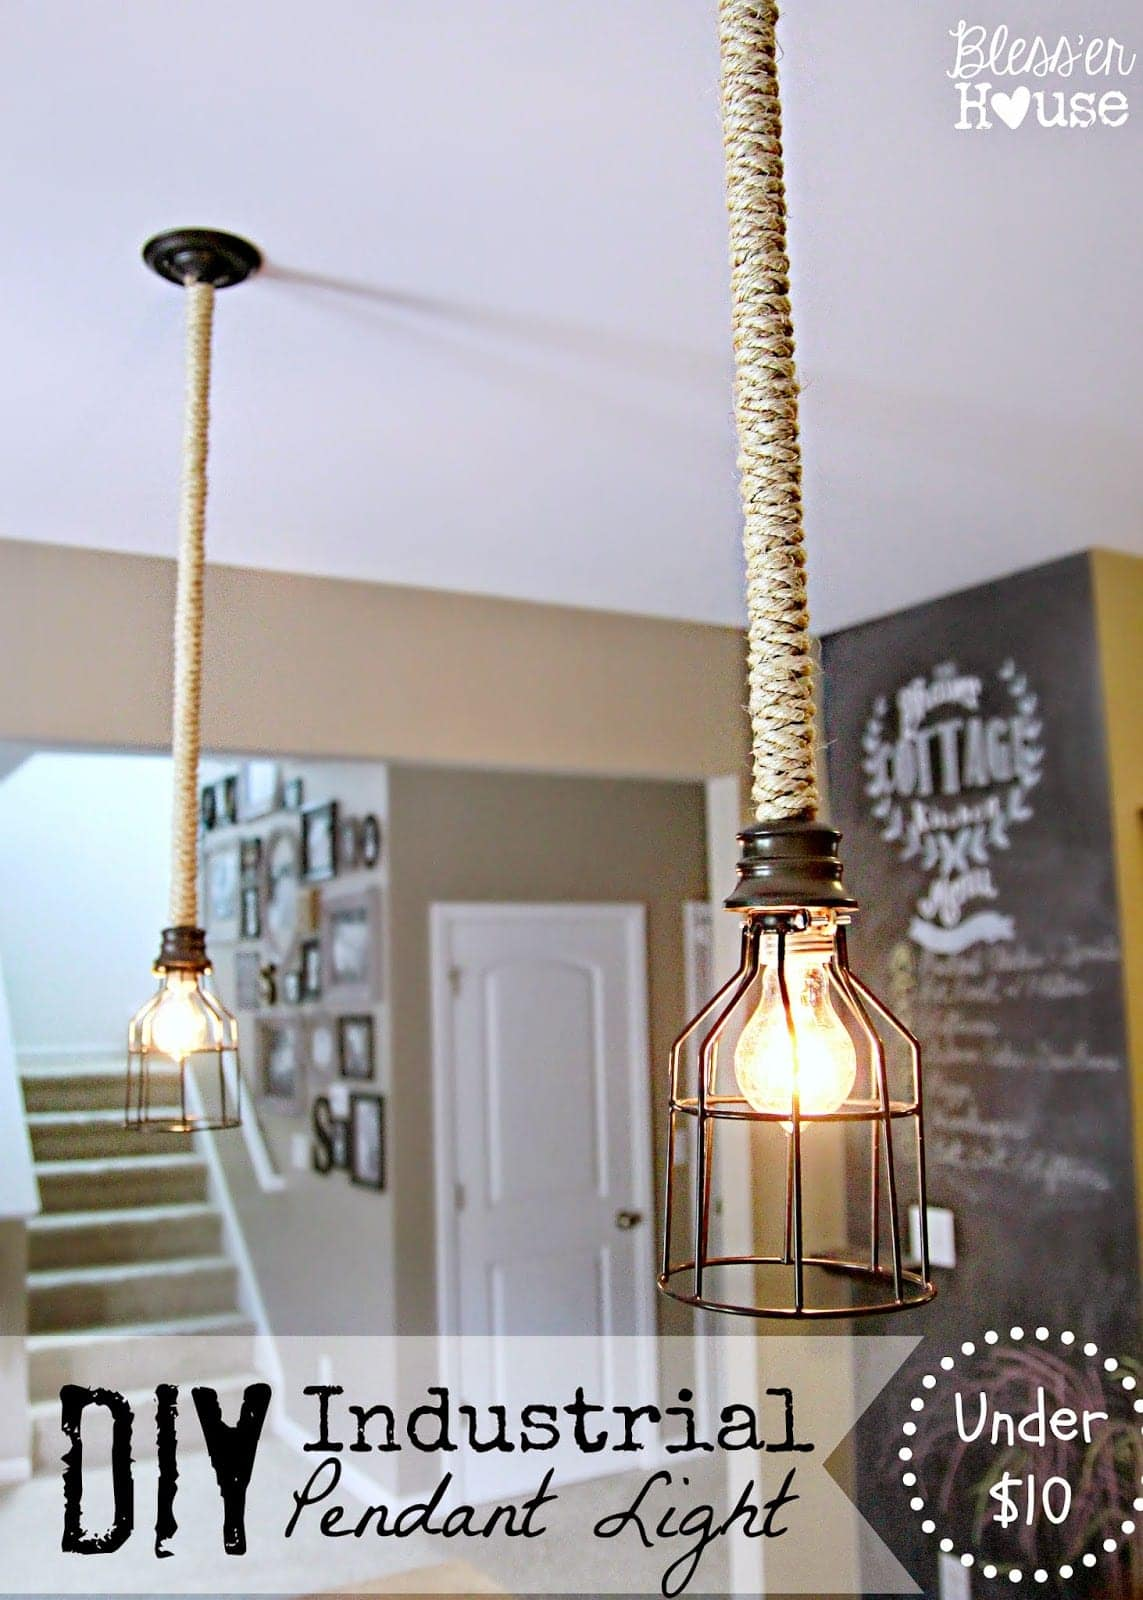 diy industrial pendant light for under $10 - bless'er house